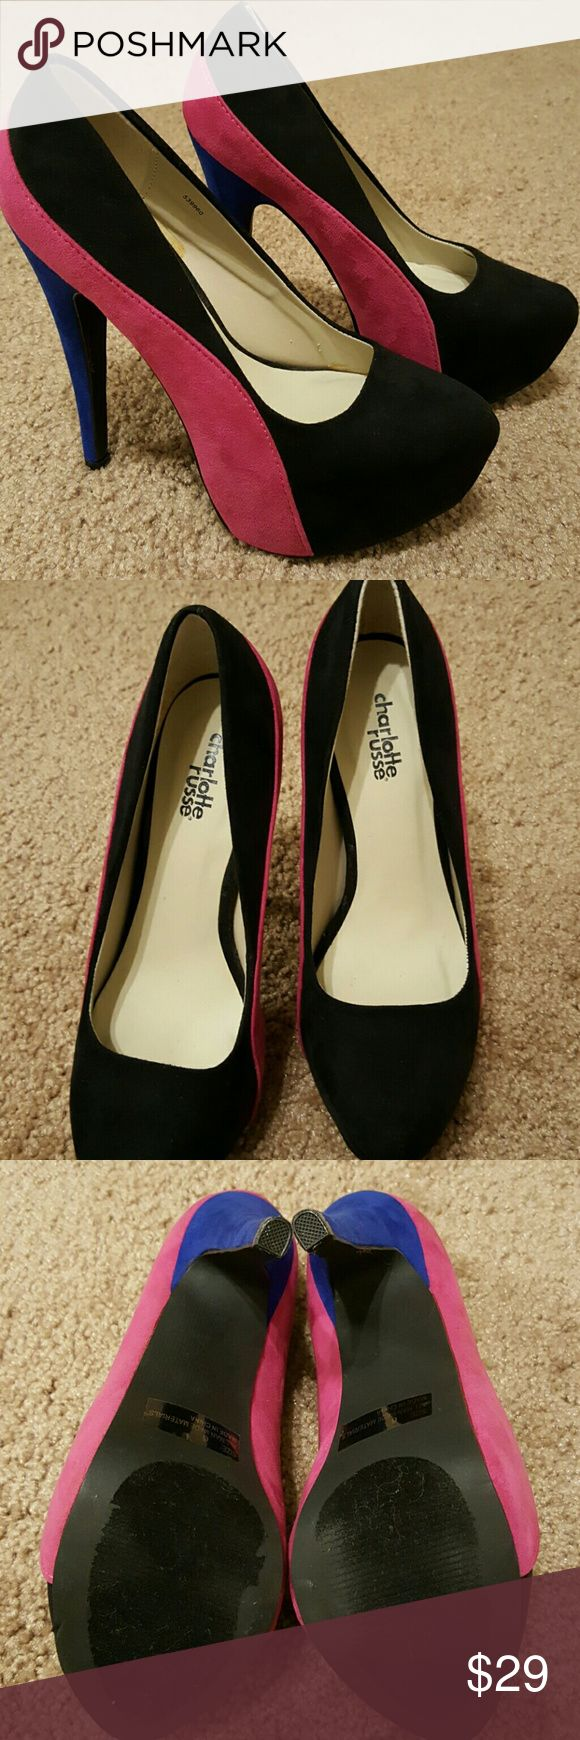 Charlotte Russe suede heels Size 6 Size 6 suede heels with black, pink and royal blue 6 inch heel. Worn once. No box Charlotte Russe Shoes Heels